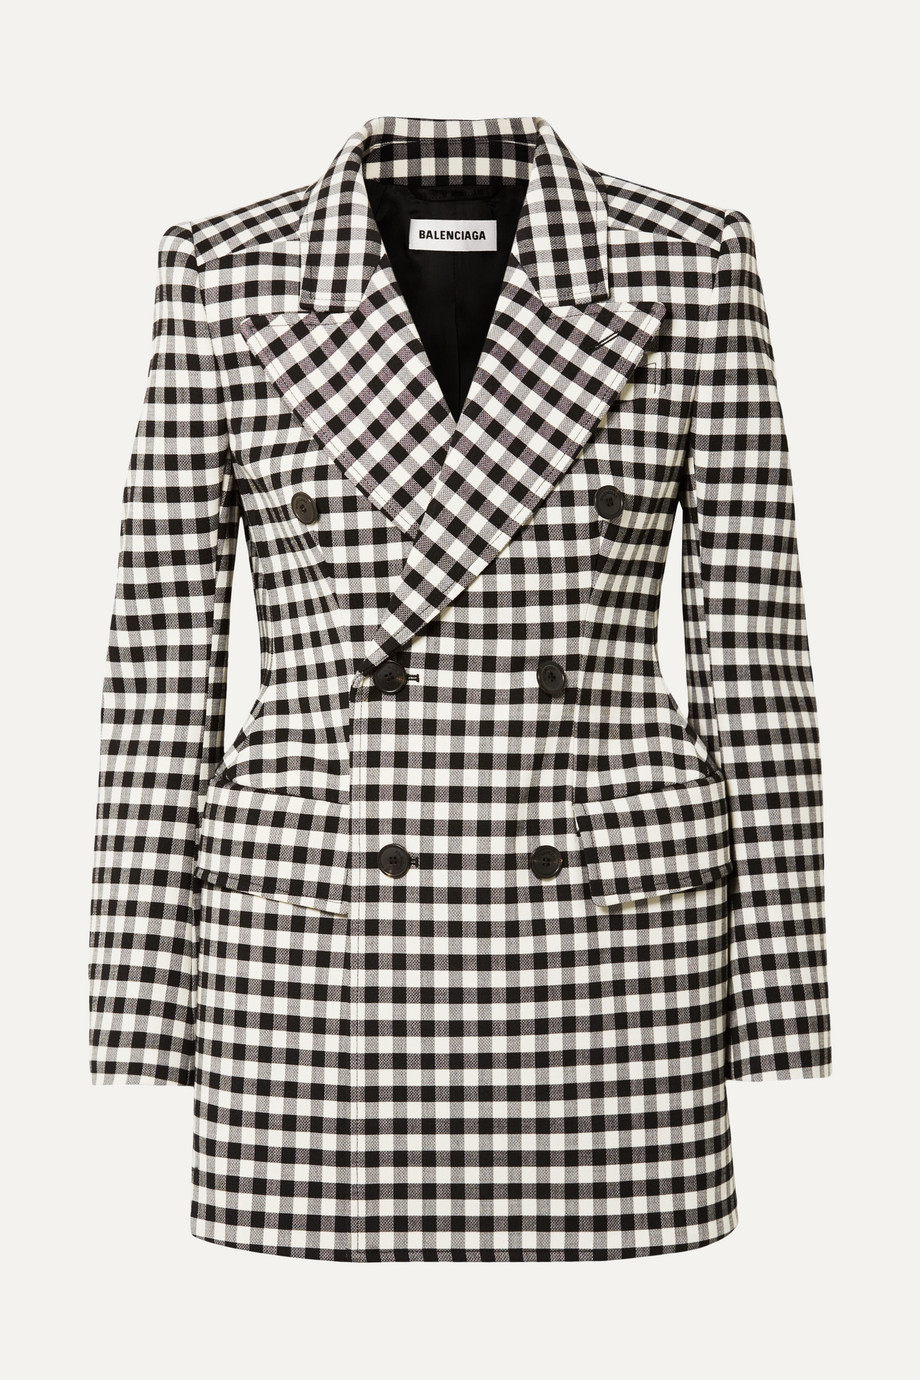 Exact Product: Kylie Jenner White And Black Blazer Photoshoot 2019, Brand: Balenciaga, Available on: net-a-porter.com, Price: $2990